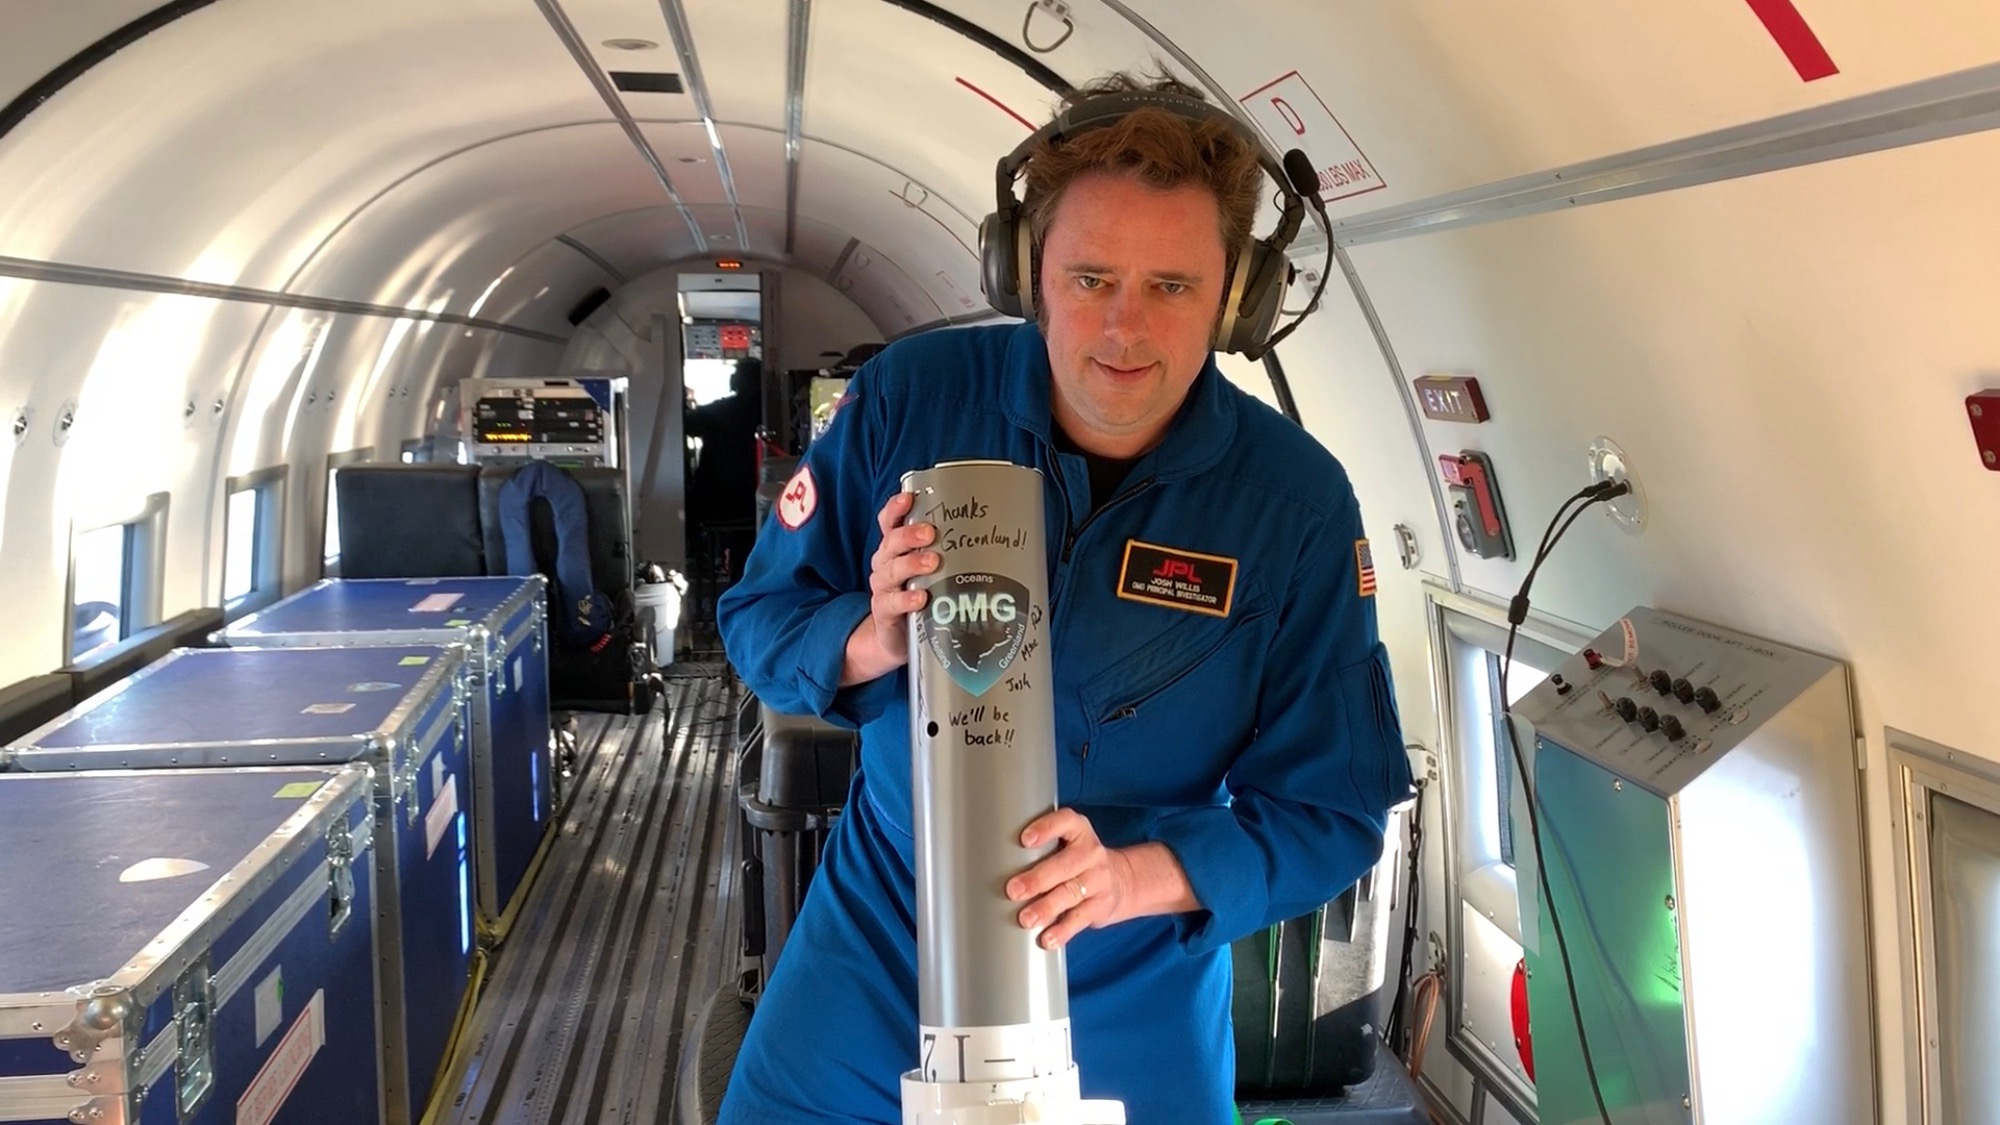 OMG Principal Investigator Josh Willis of NASA's Jet Propulsion Laboratory prepares to release the last ocean probe for OMG's 2019 ocean survey from the interior of an Airtec DC-3 Turbo aircraft.